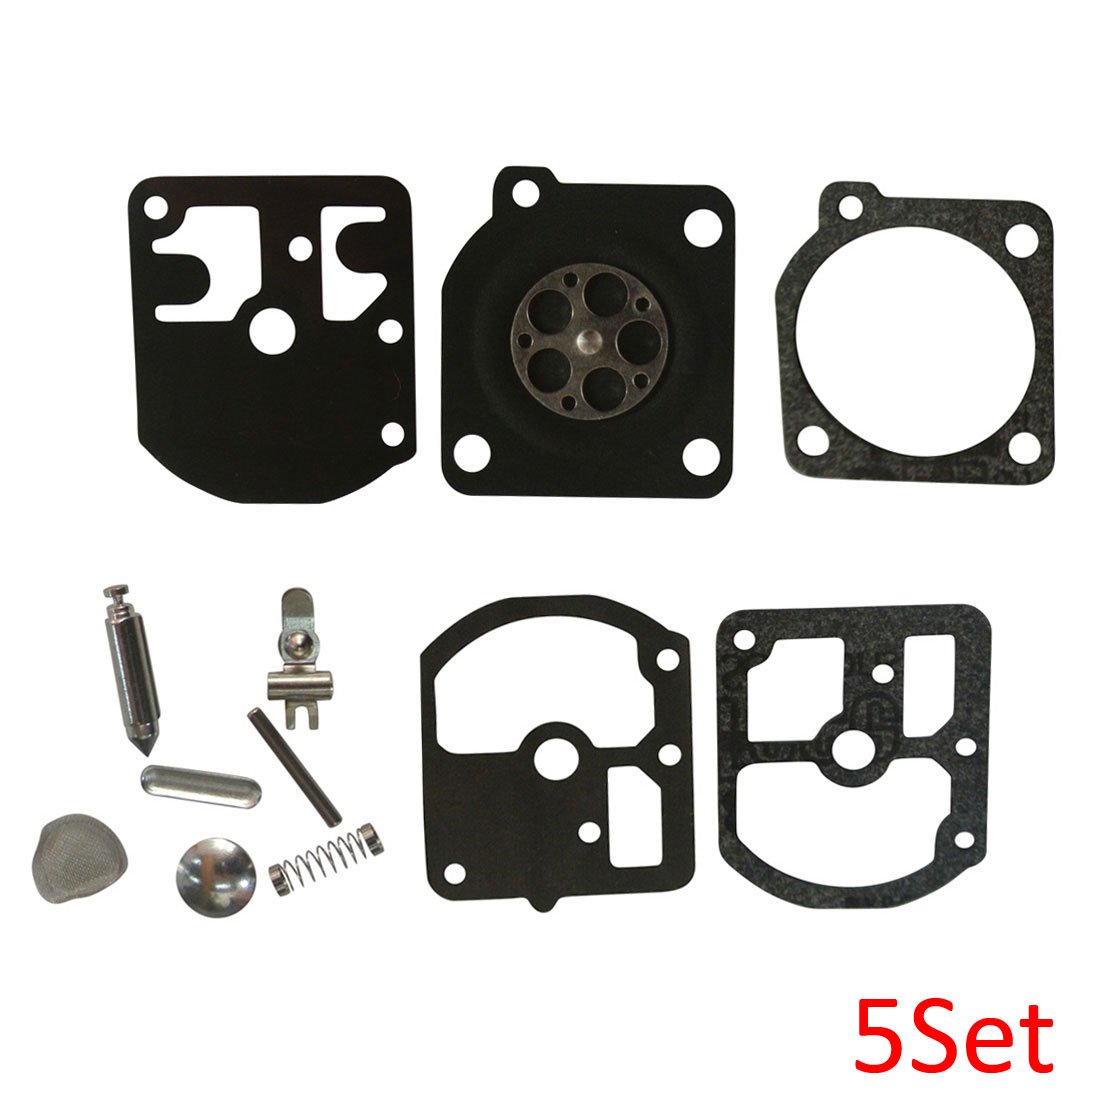 JRL Carburetor Rebuild Kit Fit Stihl 009 010 011 012 P/N ZAMA RB-7 RB-11  5Set